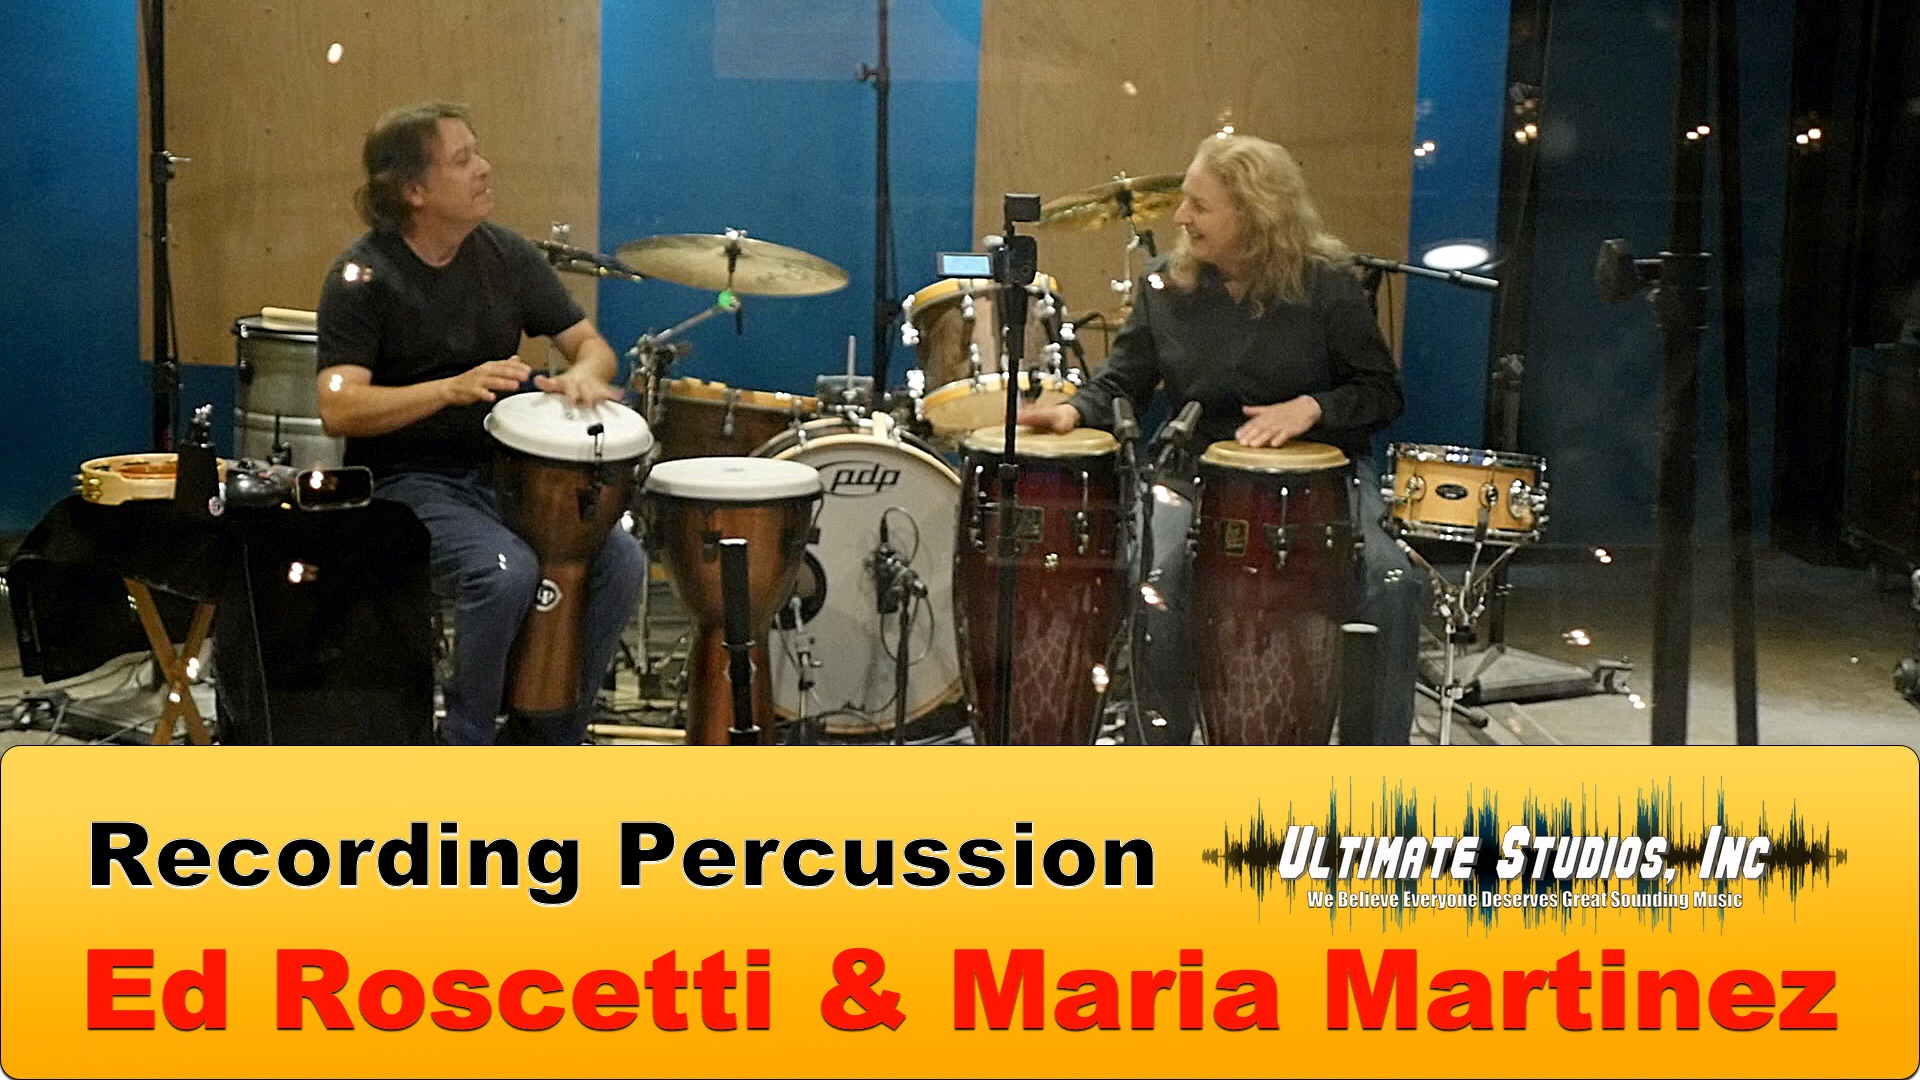 Ed Roscetti and Maria Martinez recording percussion at Ultimate Studios Inc Los Angeles